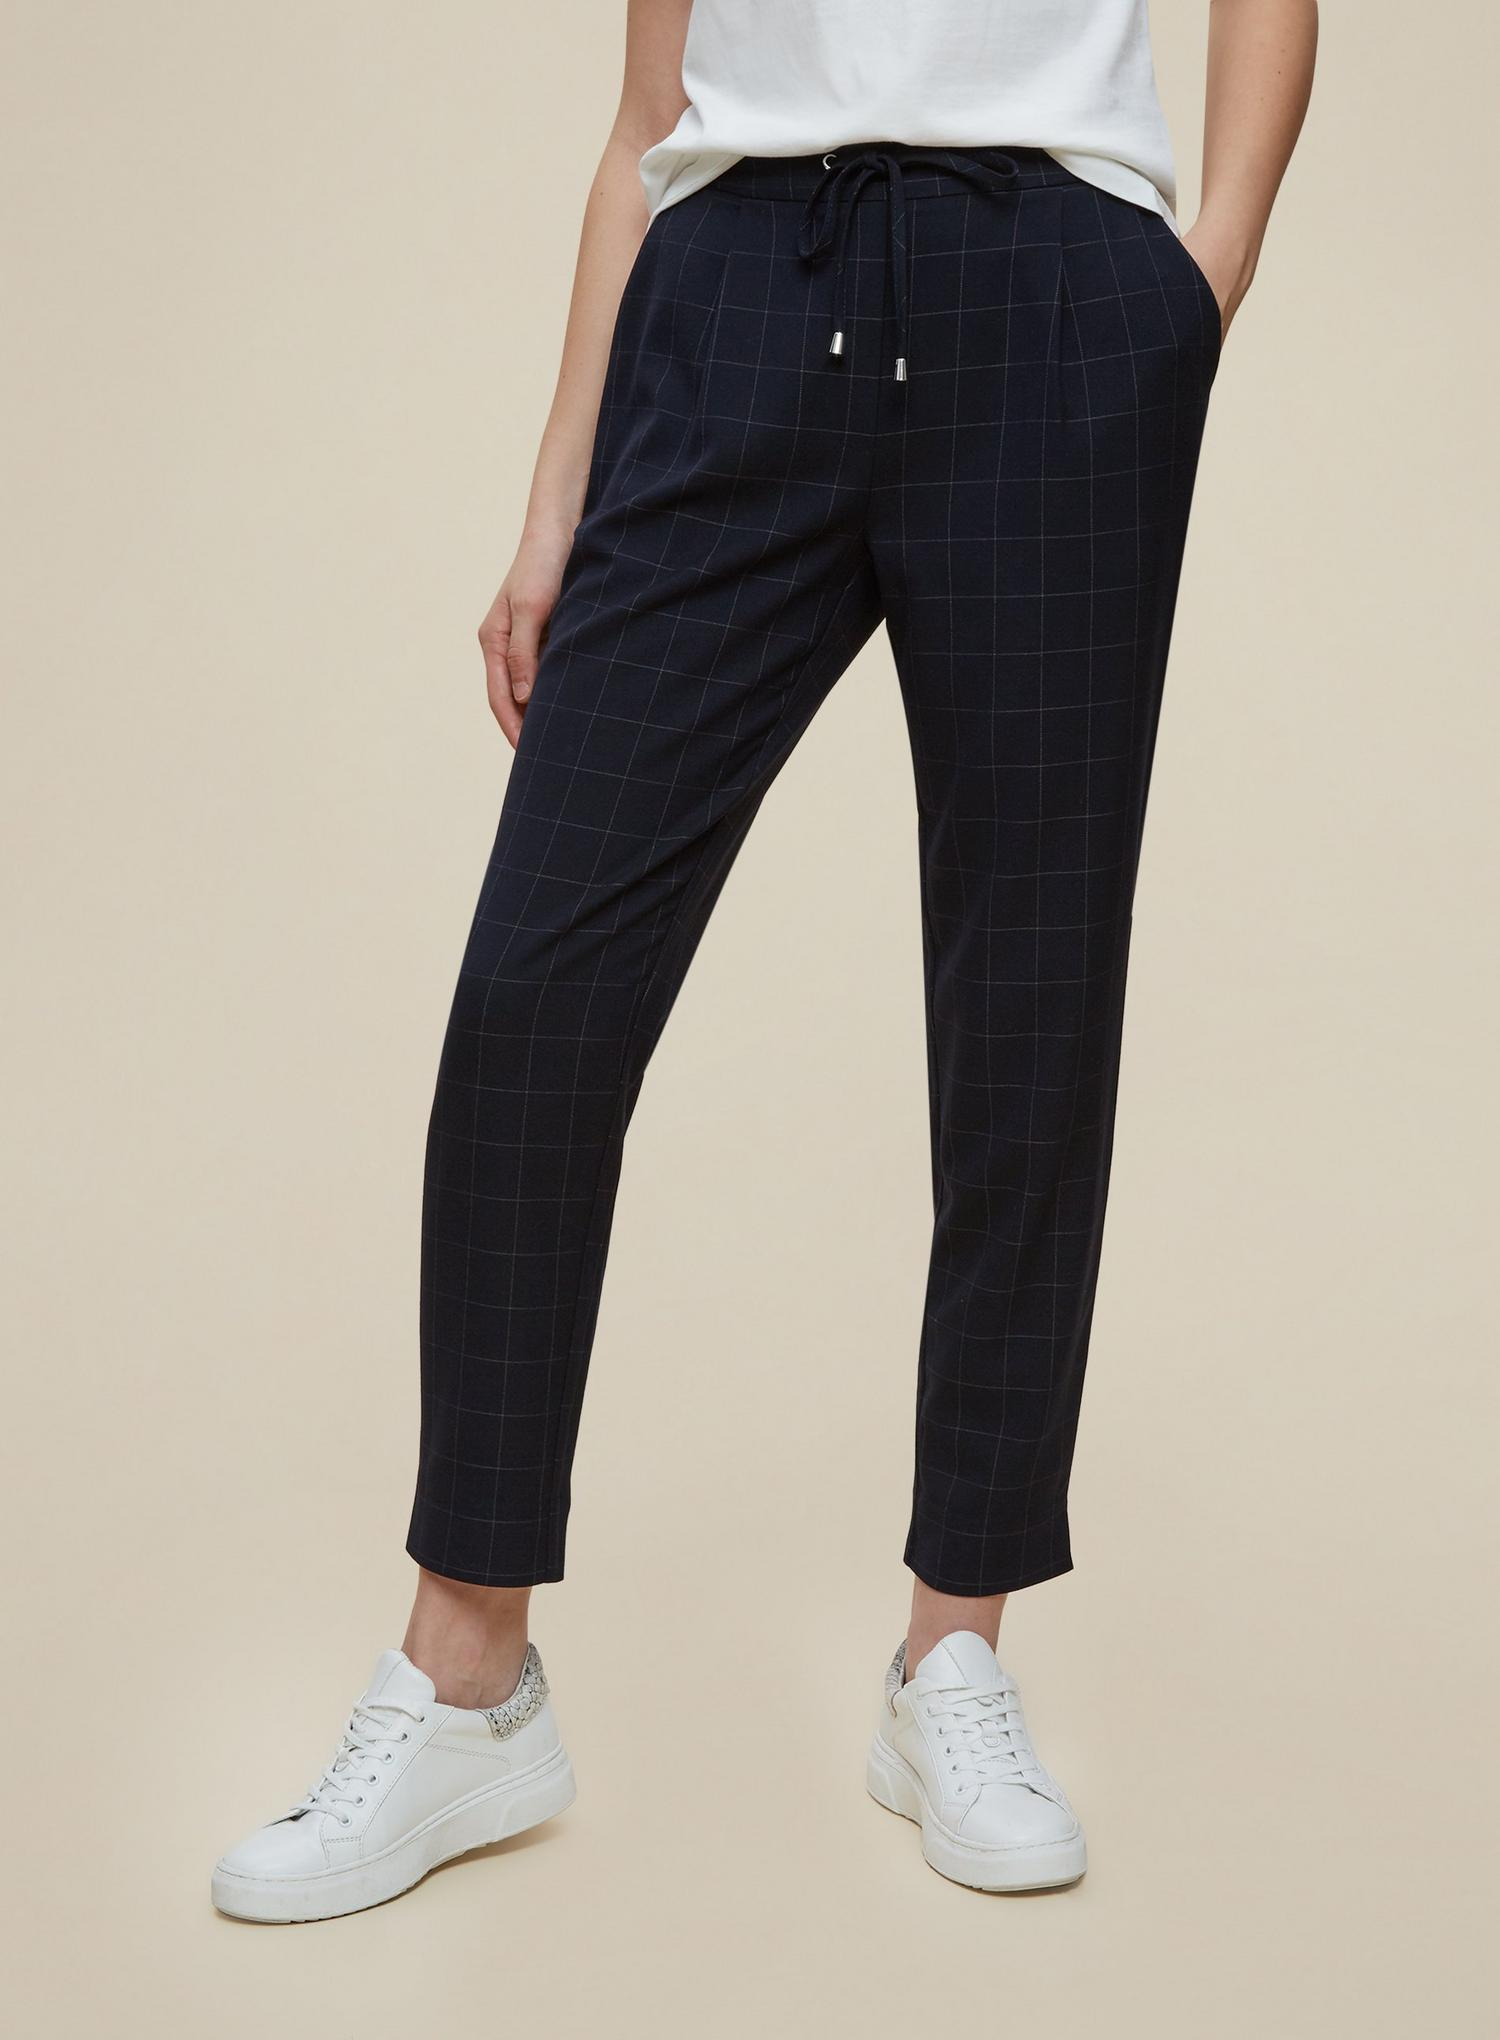 148 Navy Check Formal Jogger image number 1